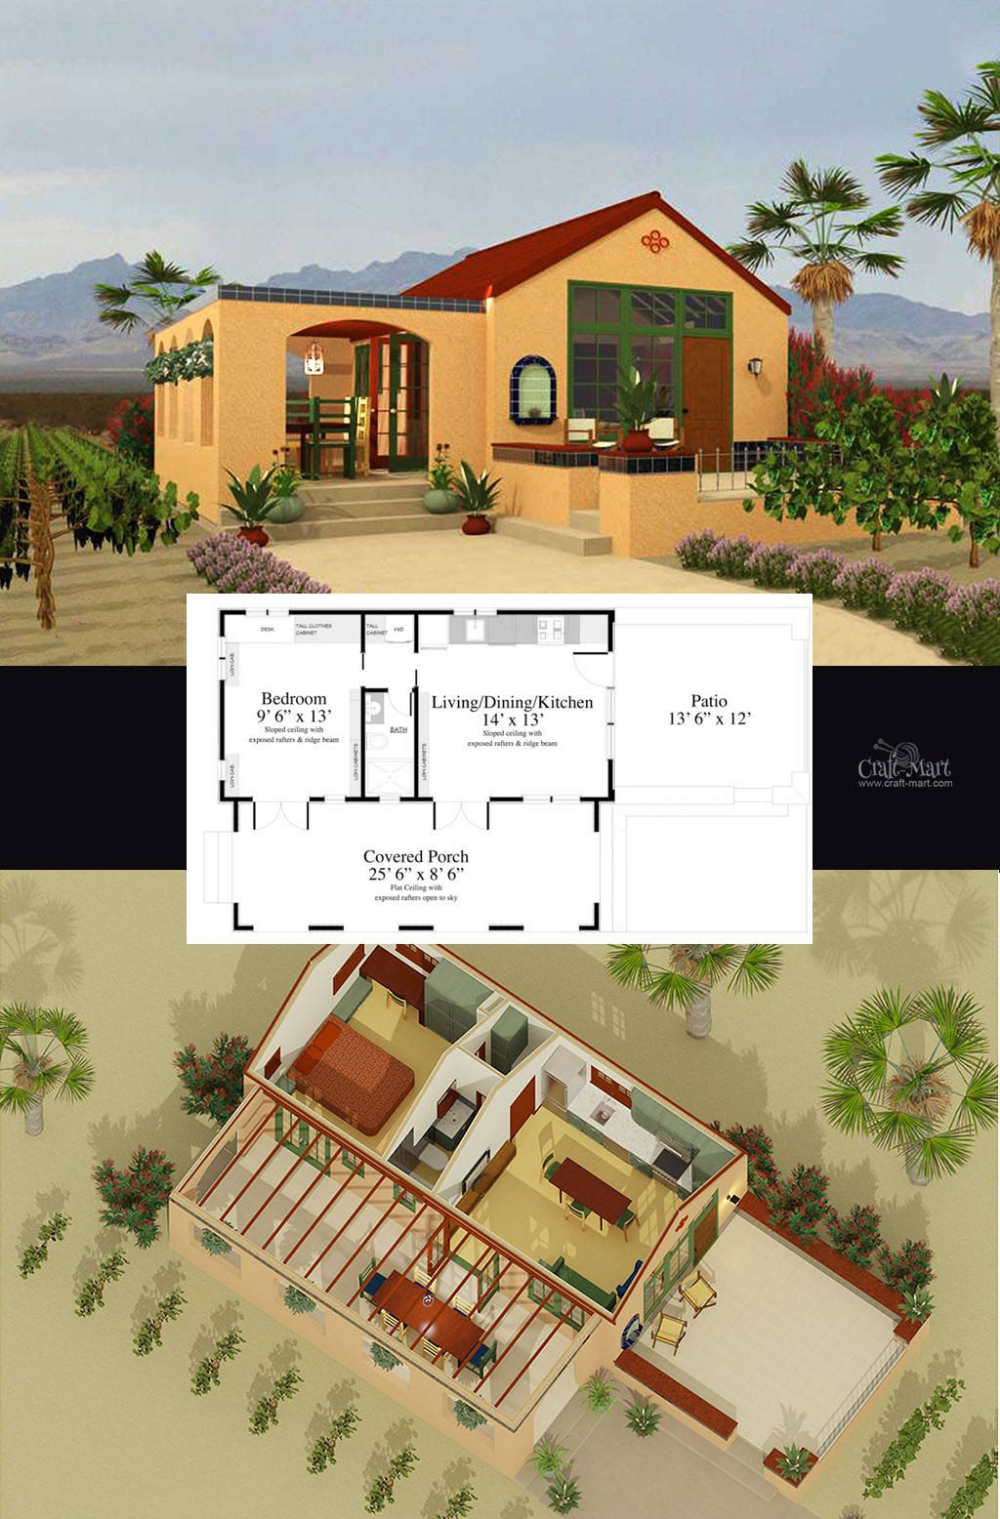 27 Adorable Free Tiny House Floor Plans | Tiny house floor plans ...